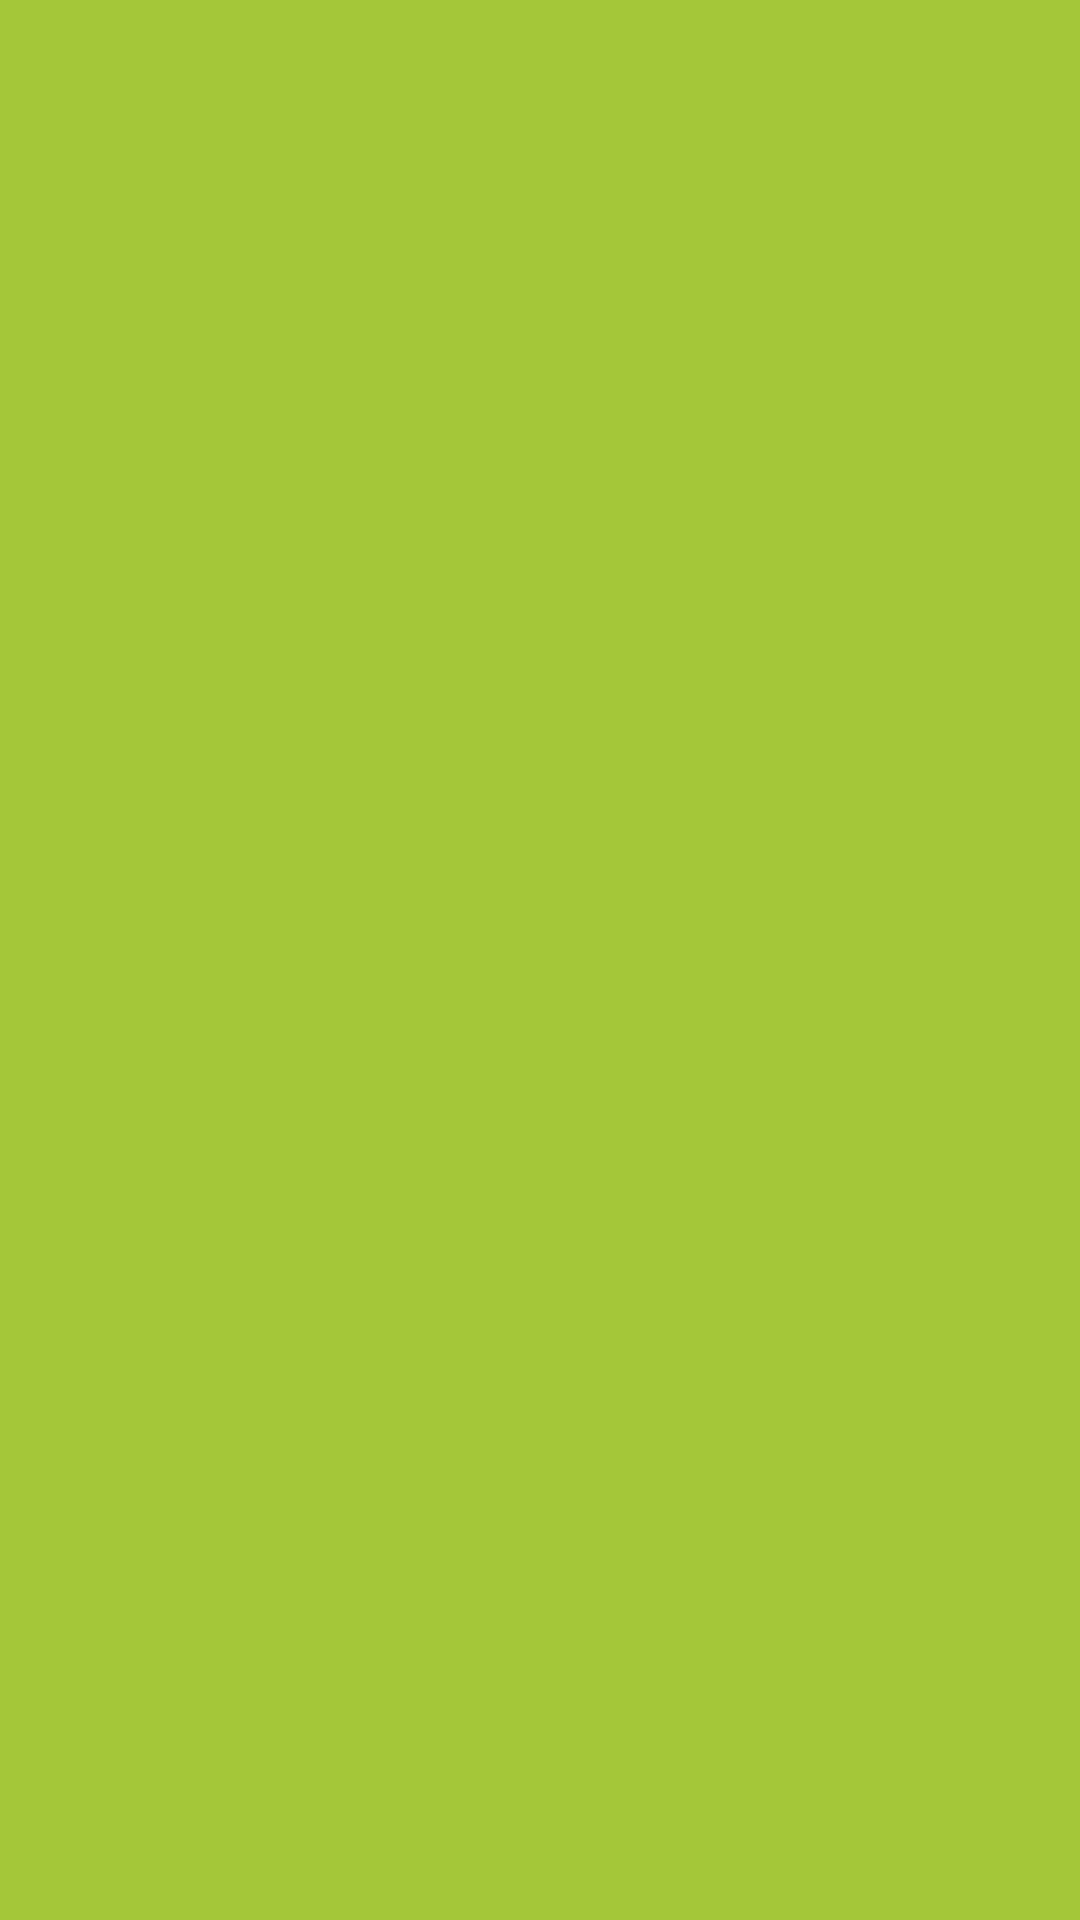 1080x1920 Android Green Solid Color Background